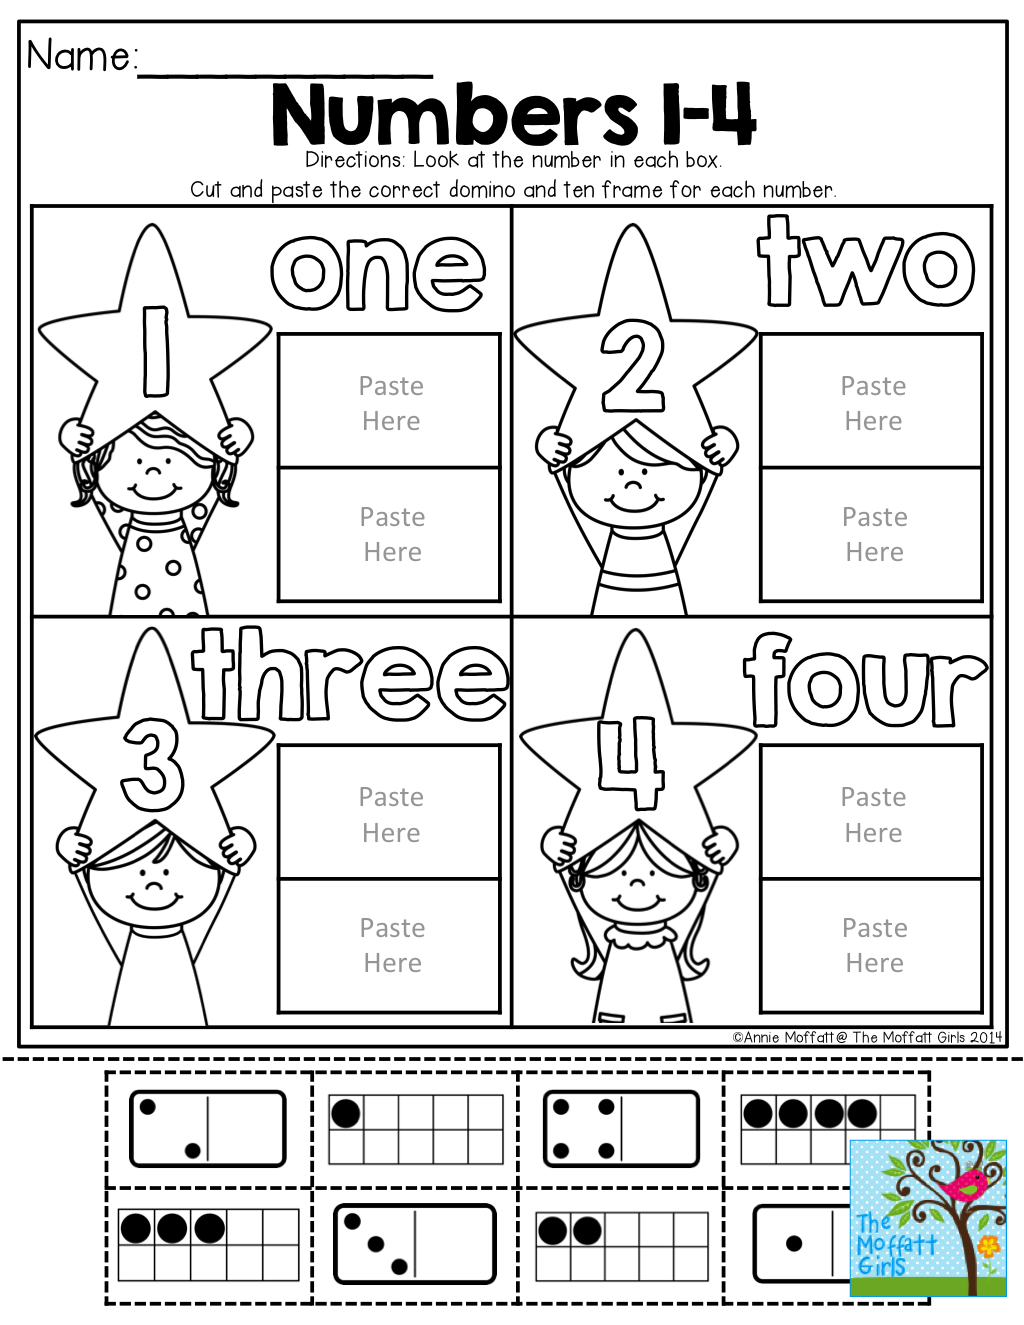 Workbooks ten frame worksheets printables : Cut and Paste the ten frame and domino that matches! TONS of FUN ...